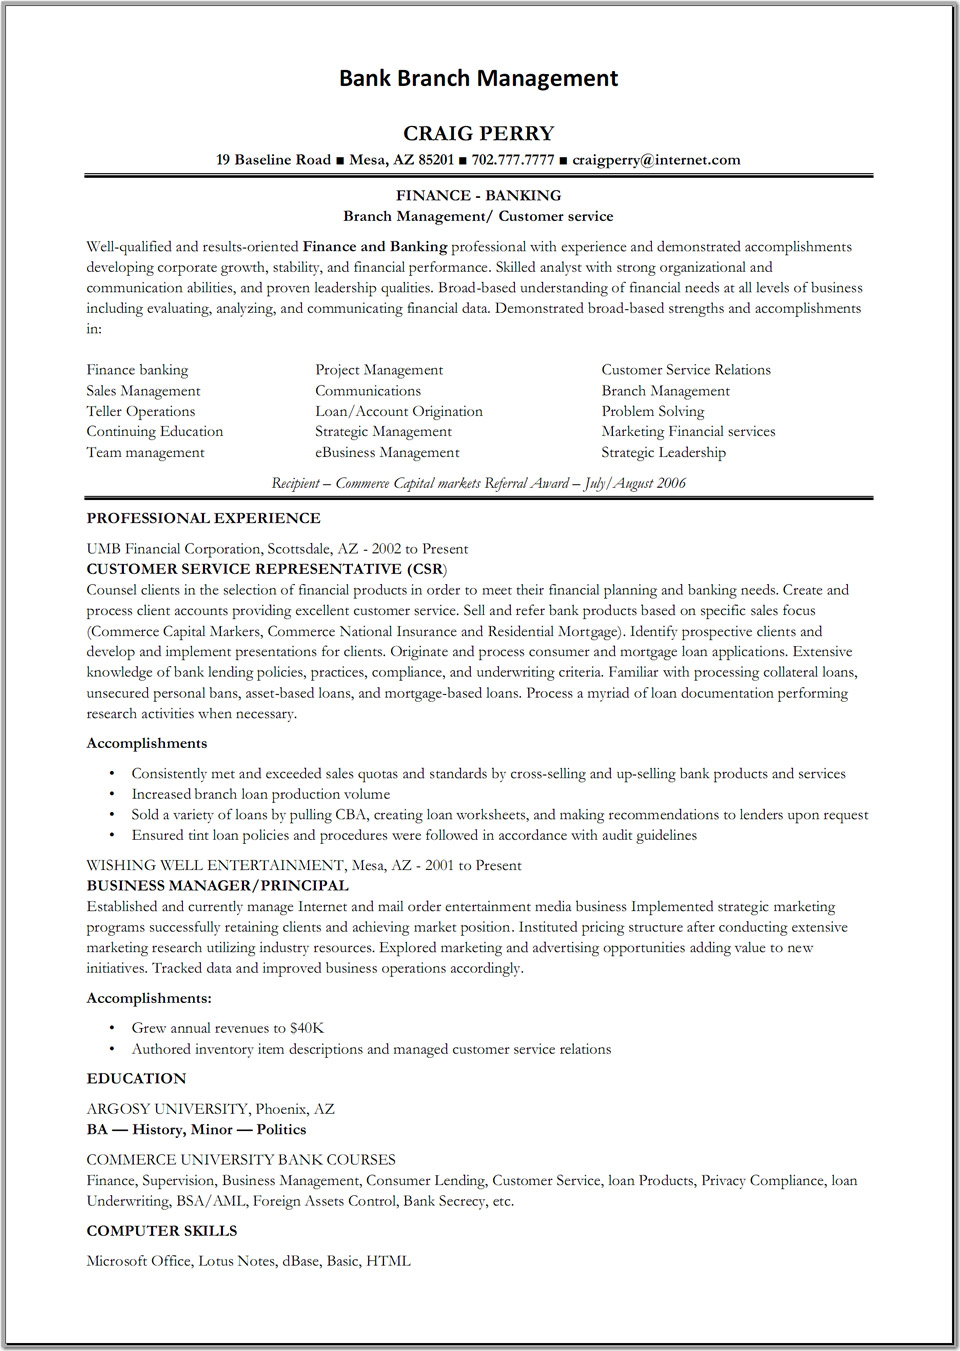 professional summary for bank teller resume bank branch managemennt professional summary for bank teller resume skills - Head Teller Resume